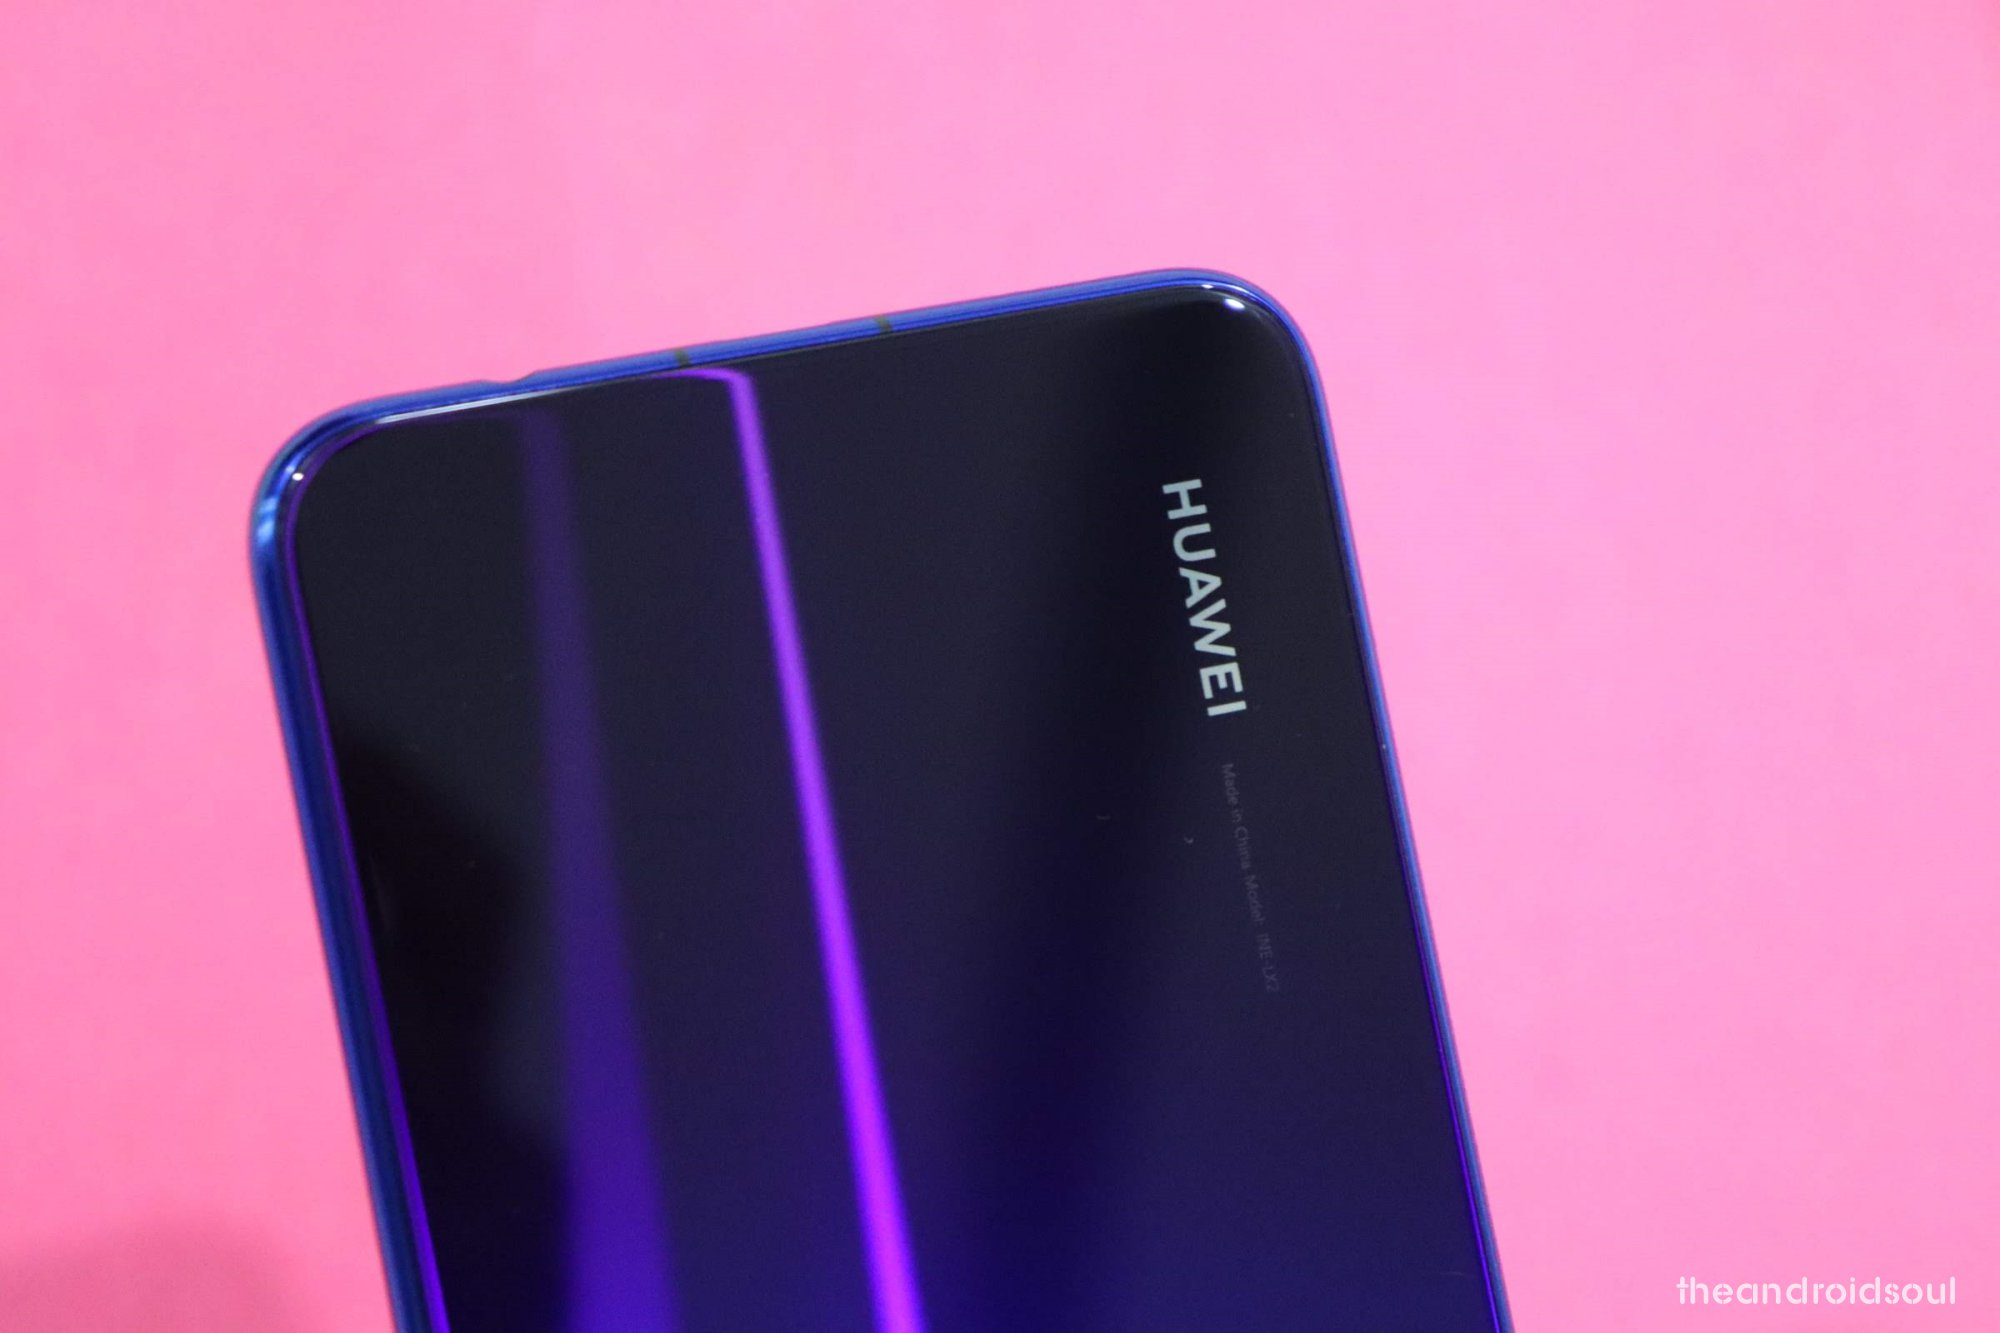 EMUI 9 0 beta with Android 9 Pie released for Huawei P10